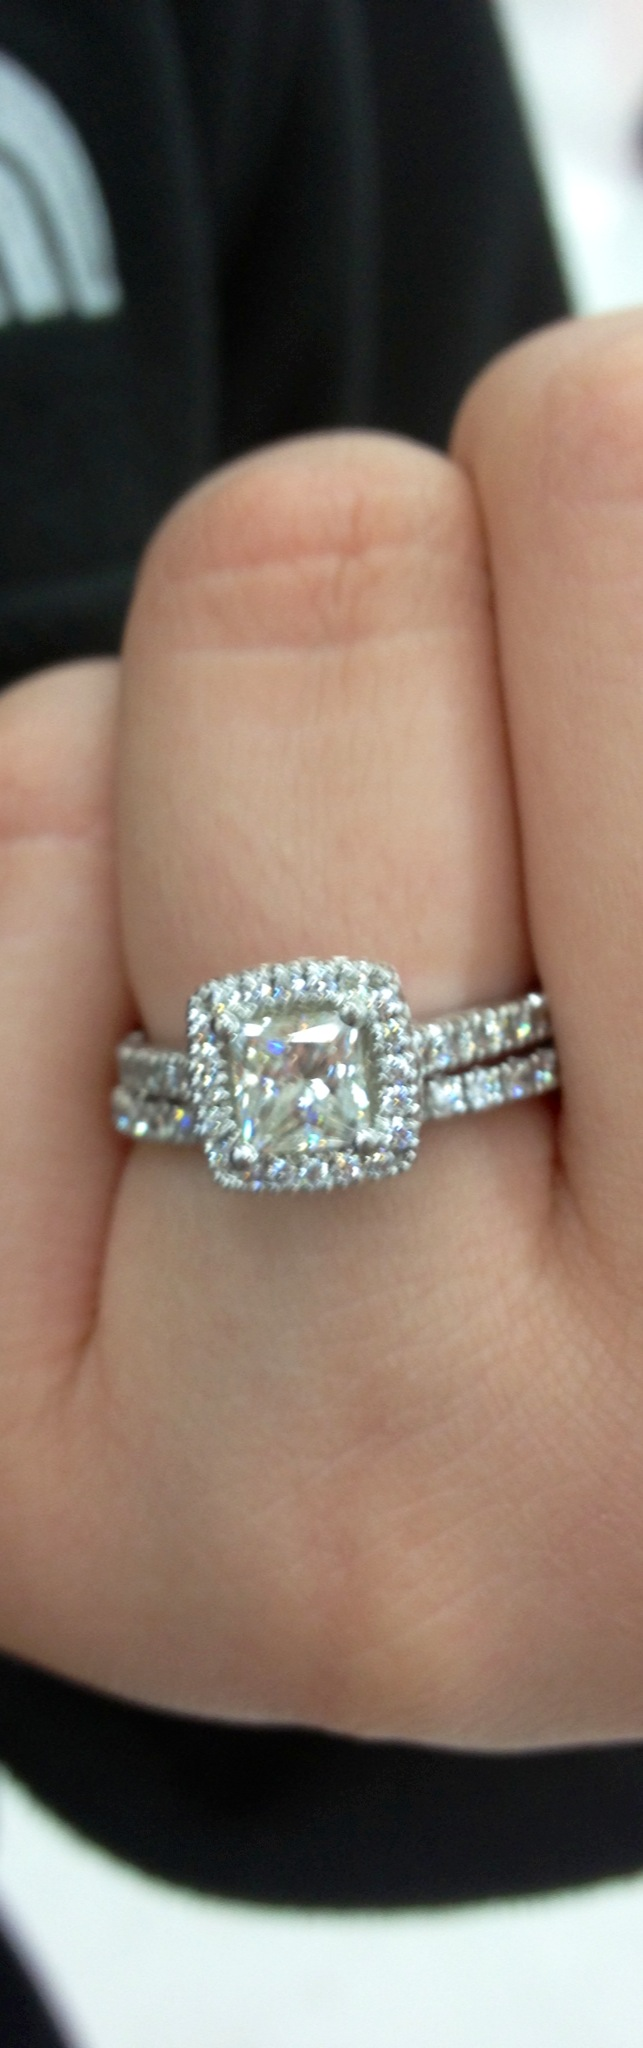 With Kay Jewelers, the company will not actually buy back a ring or another piece of jewelry that a customer has purchased from them, but they do have some options available that does allow the customer to return their purchase and obtain another piece of jewelry that better fit their needs.